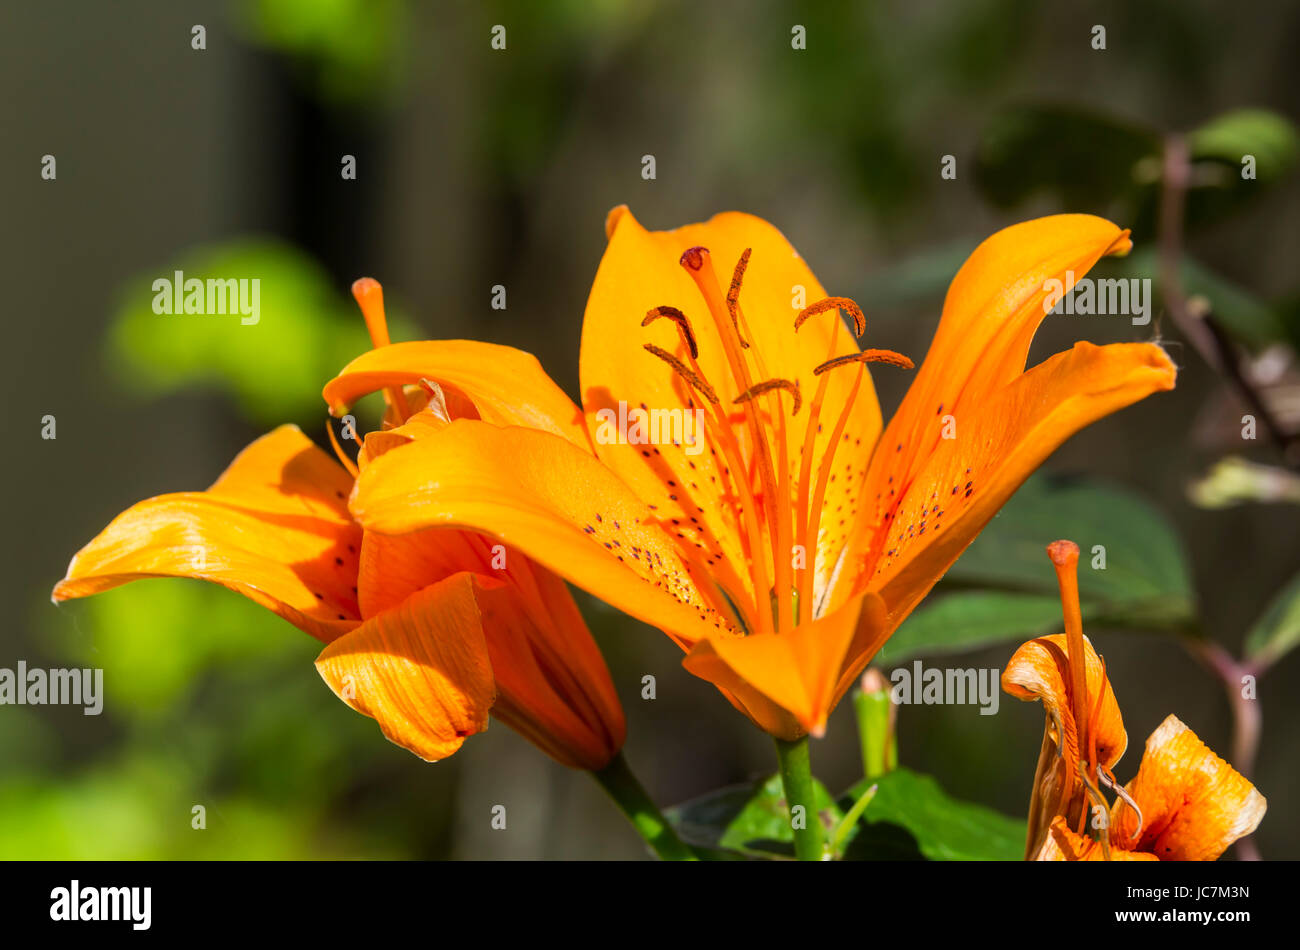 Orange Asiatic Lily growing in early Summer in West Sussex, England, UK. - Stock Image